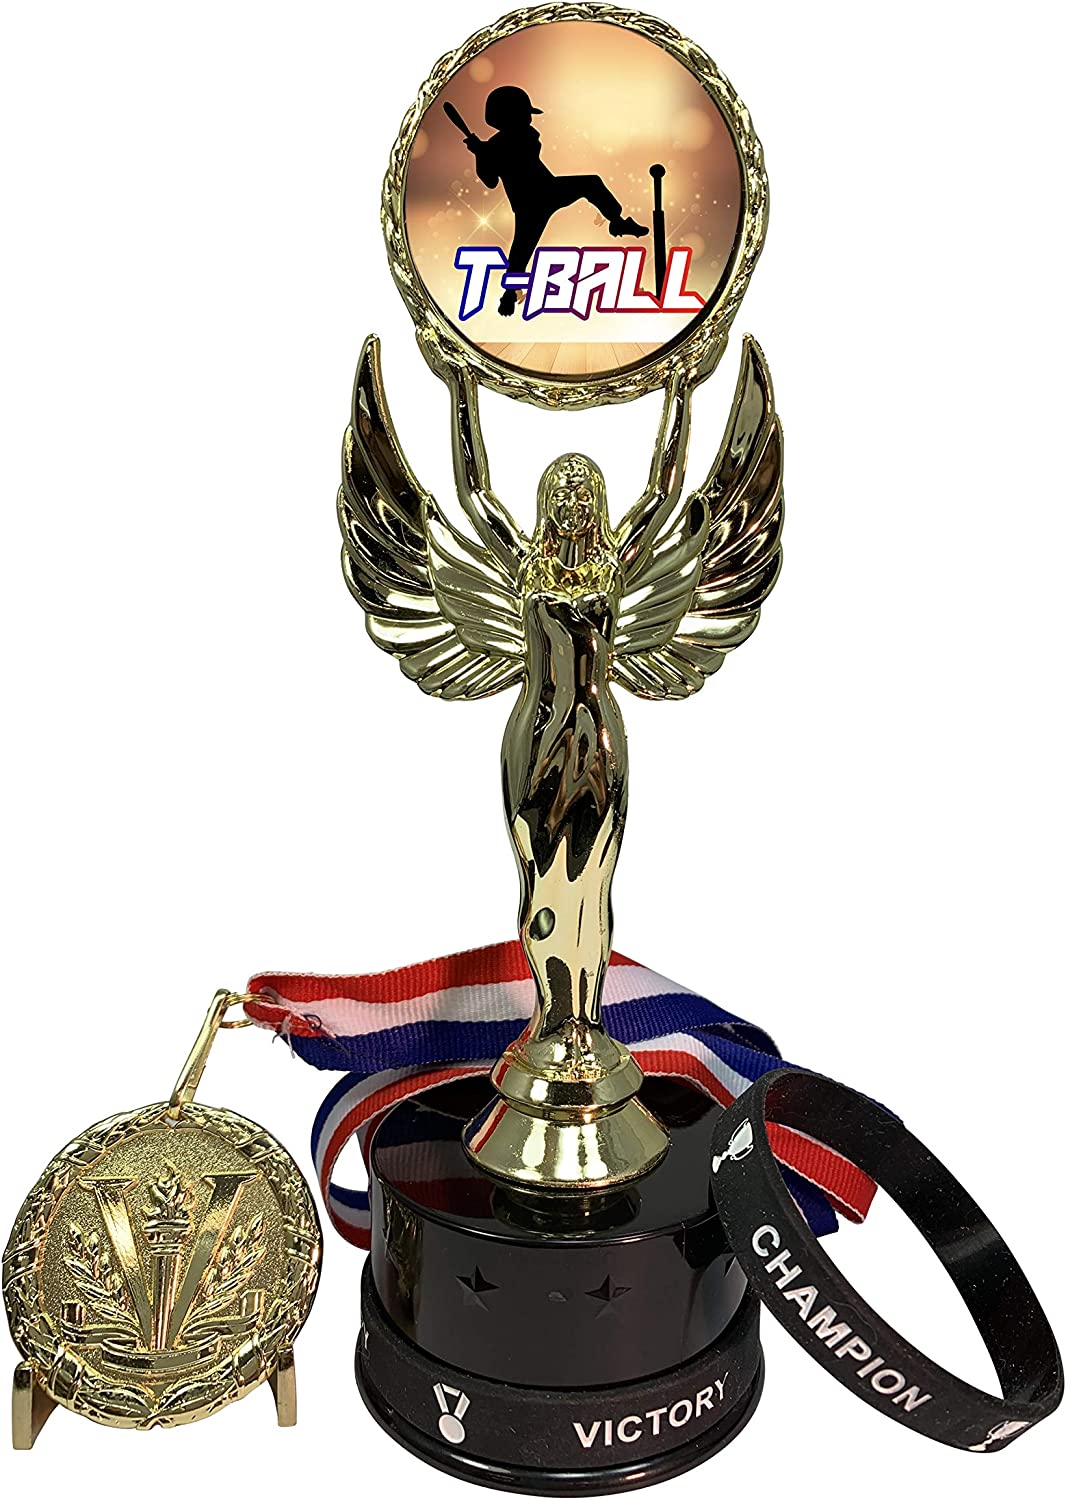 Express Medals 1 Max 47% OFF to 12 Packs of Awards Tee Ball That Trophy Incl Excellent